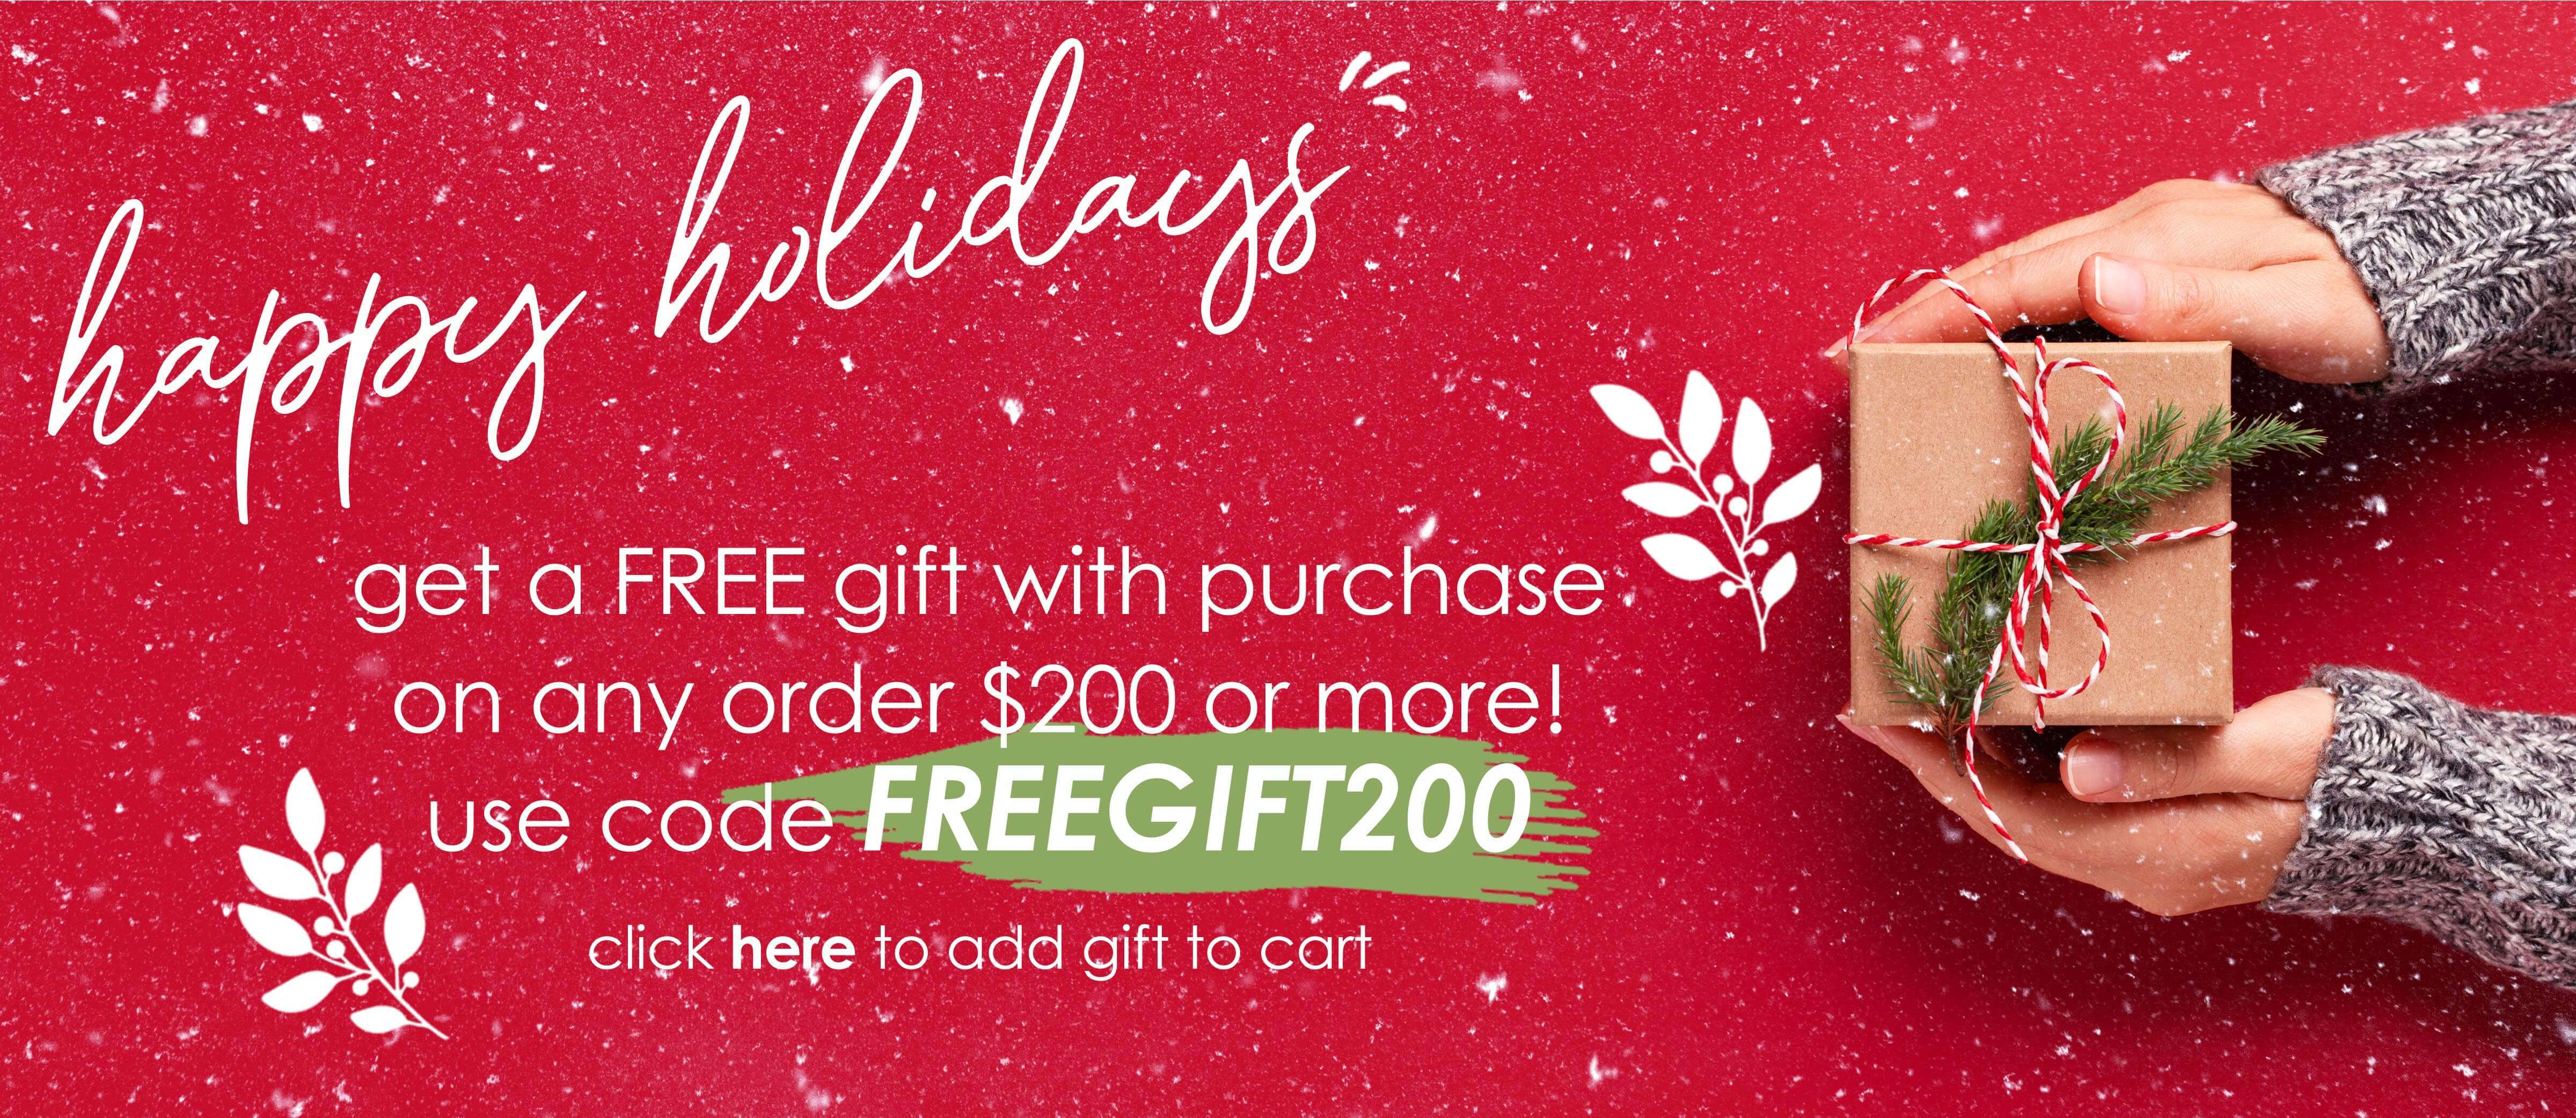 Happy holidays! Get a free gift with purchase on any order $200 or more! Use code FREEGIFT200. Click here to add gift to cart.